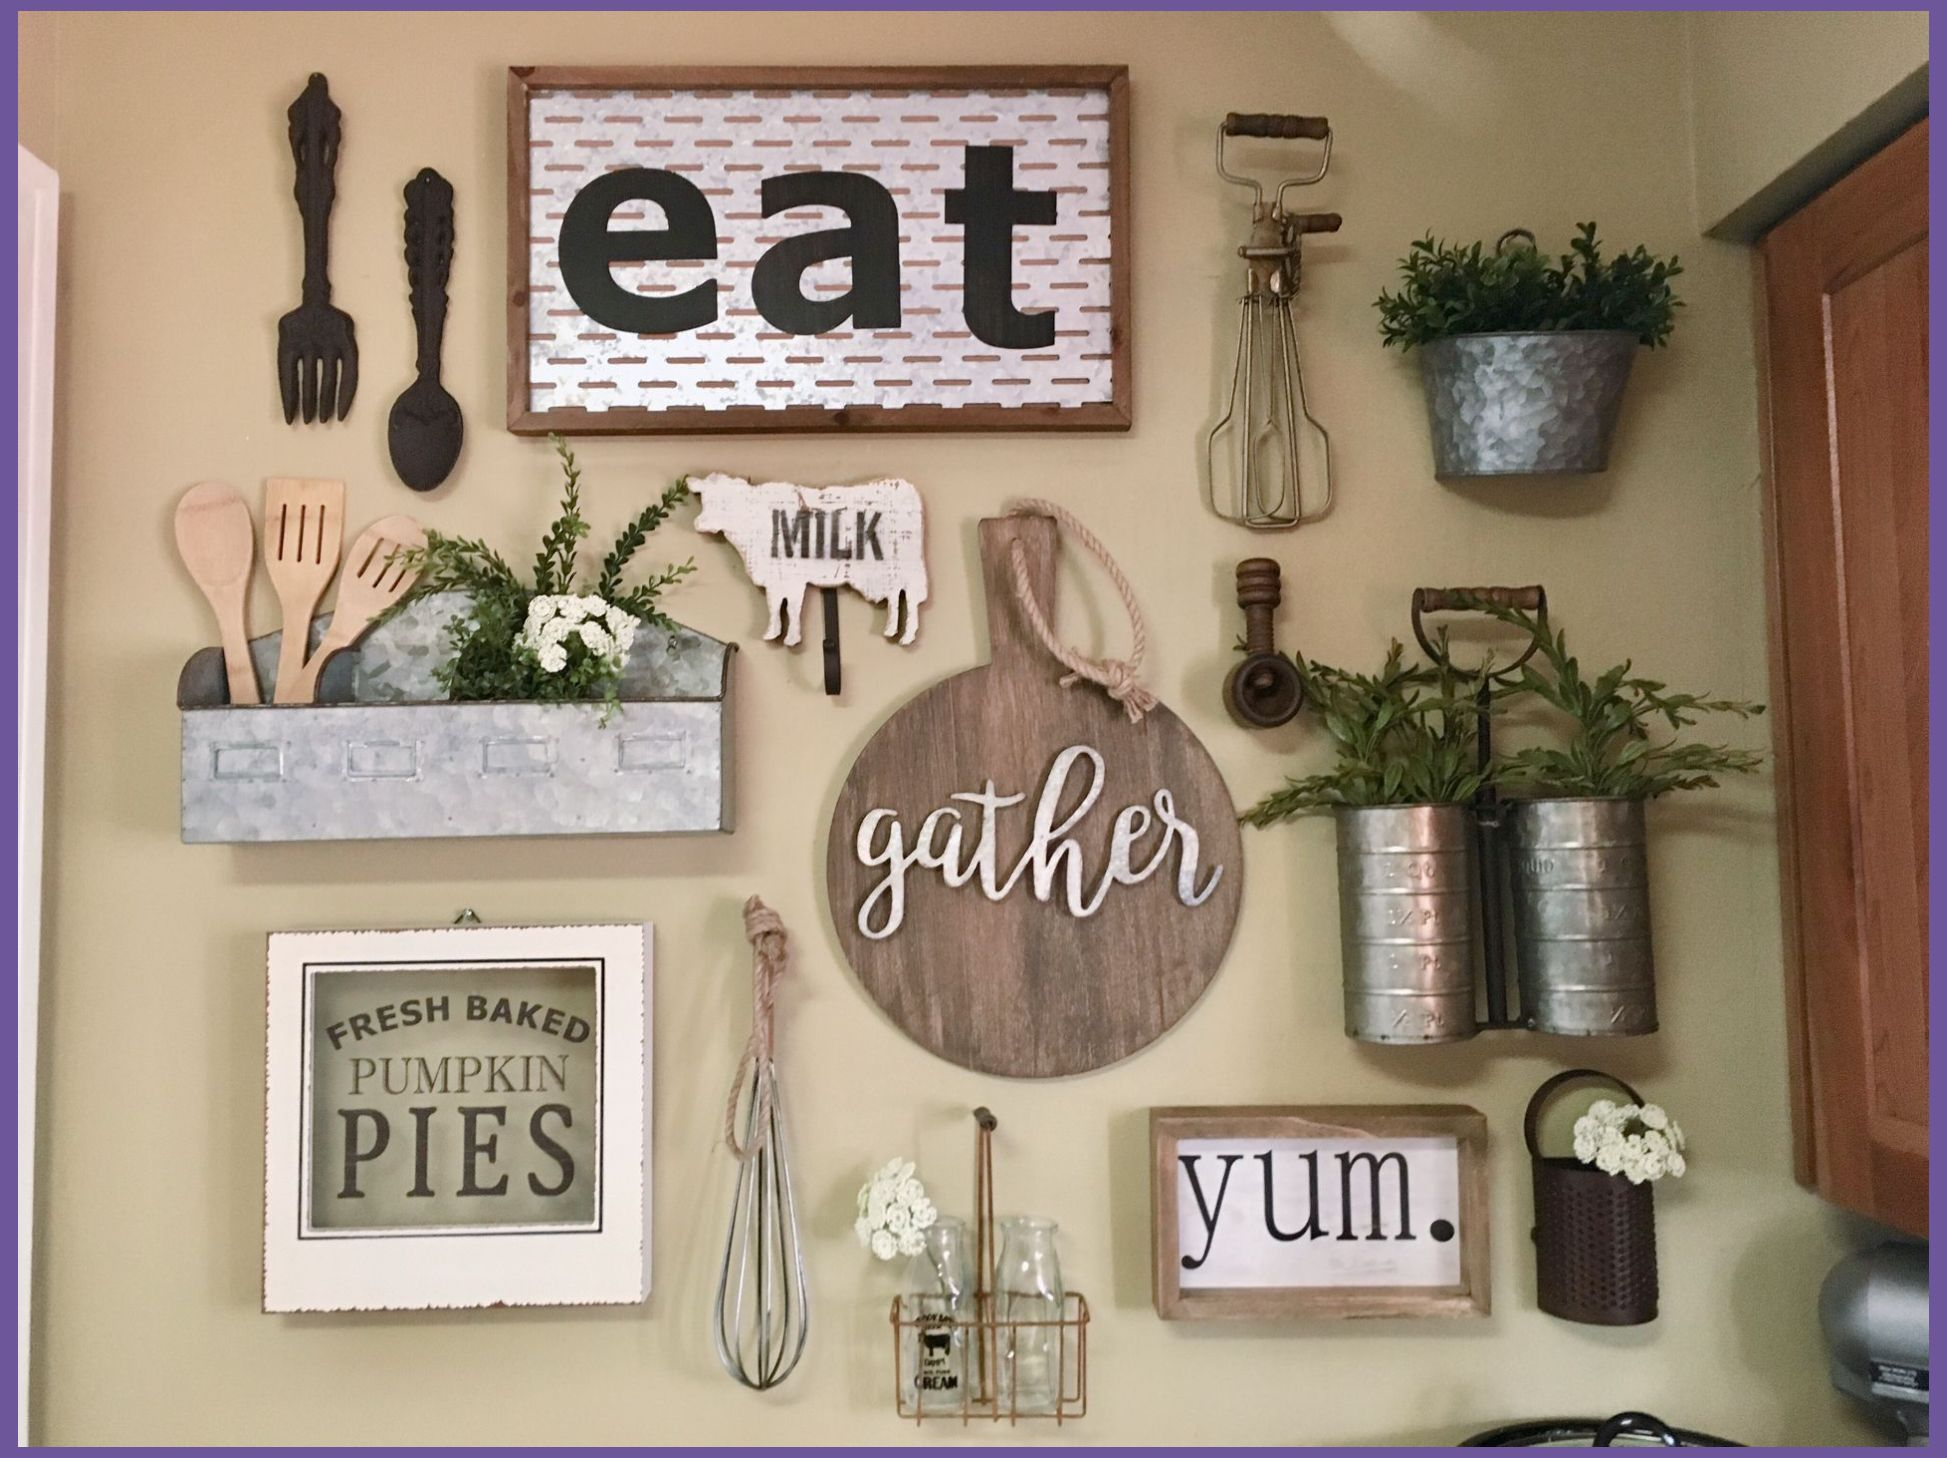 Decorating Tips For The Kitchen Kitchen Decor Tips In 2020 Kitchen Gallery Wall Dining Room Wall Decor Farmhouse Wall Decor